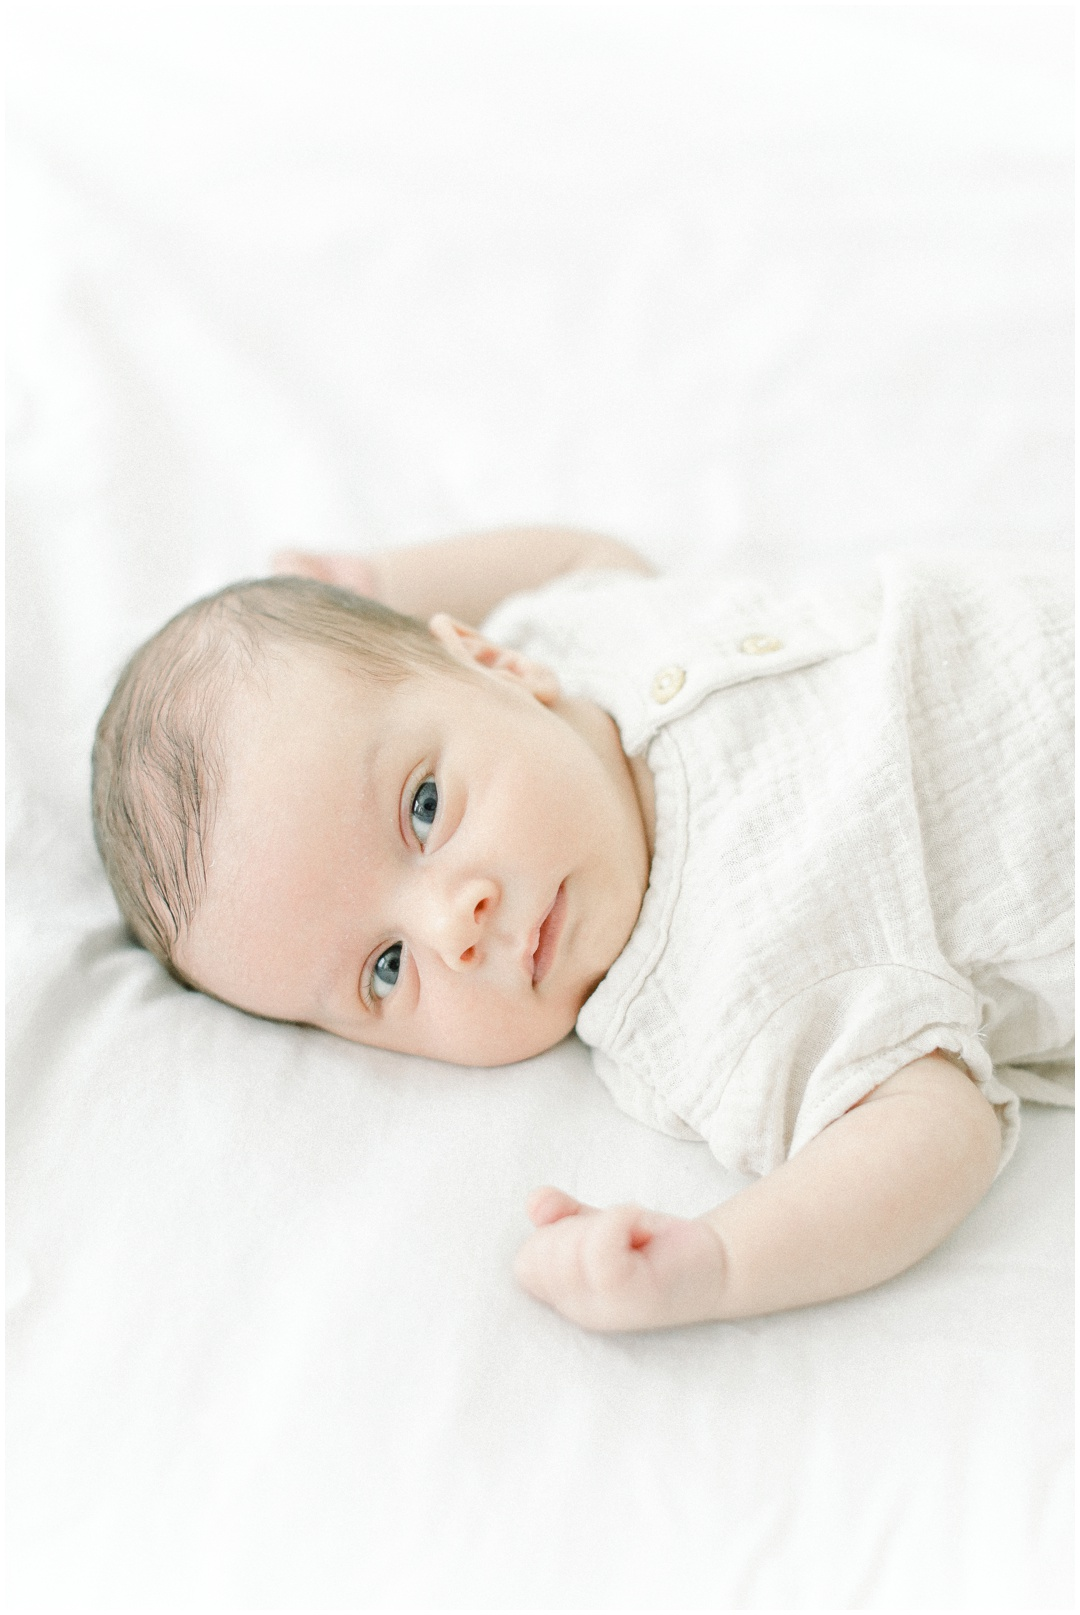 Newport_Beach_Newborn_Session_Orange_County_Family_Photographer_Danielle_Saluan__4292.jpg